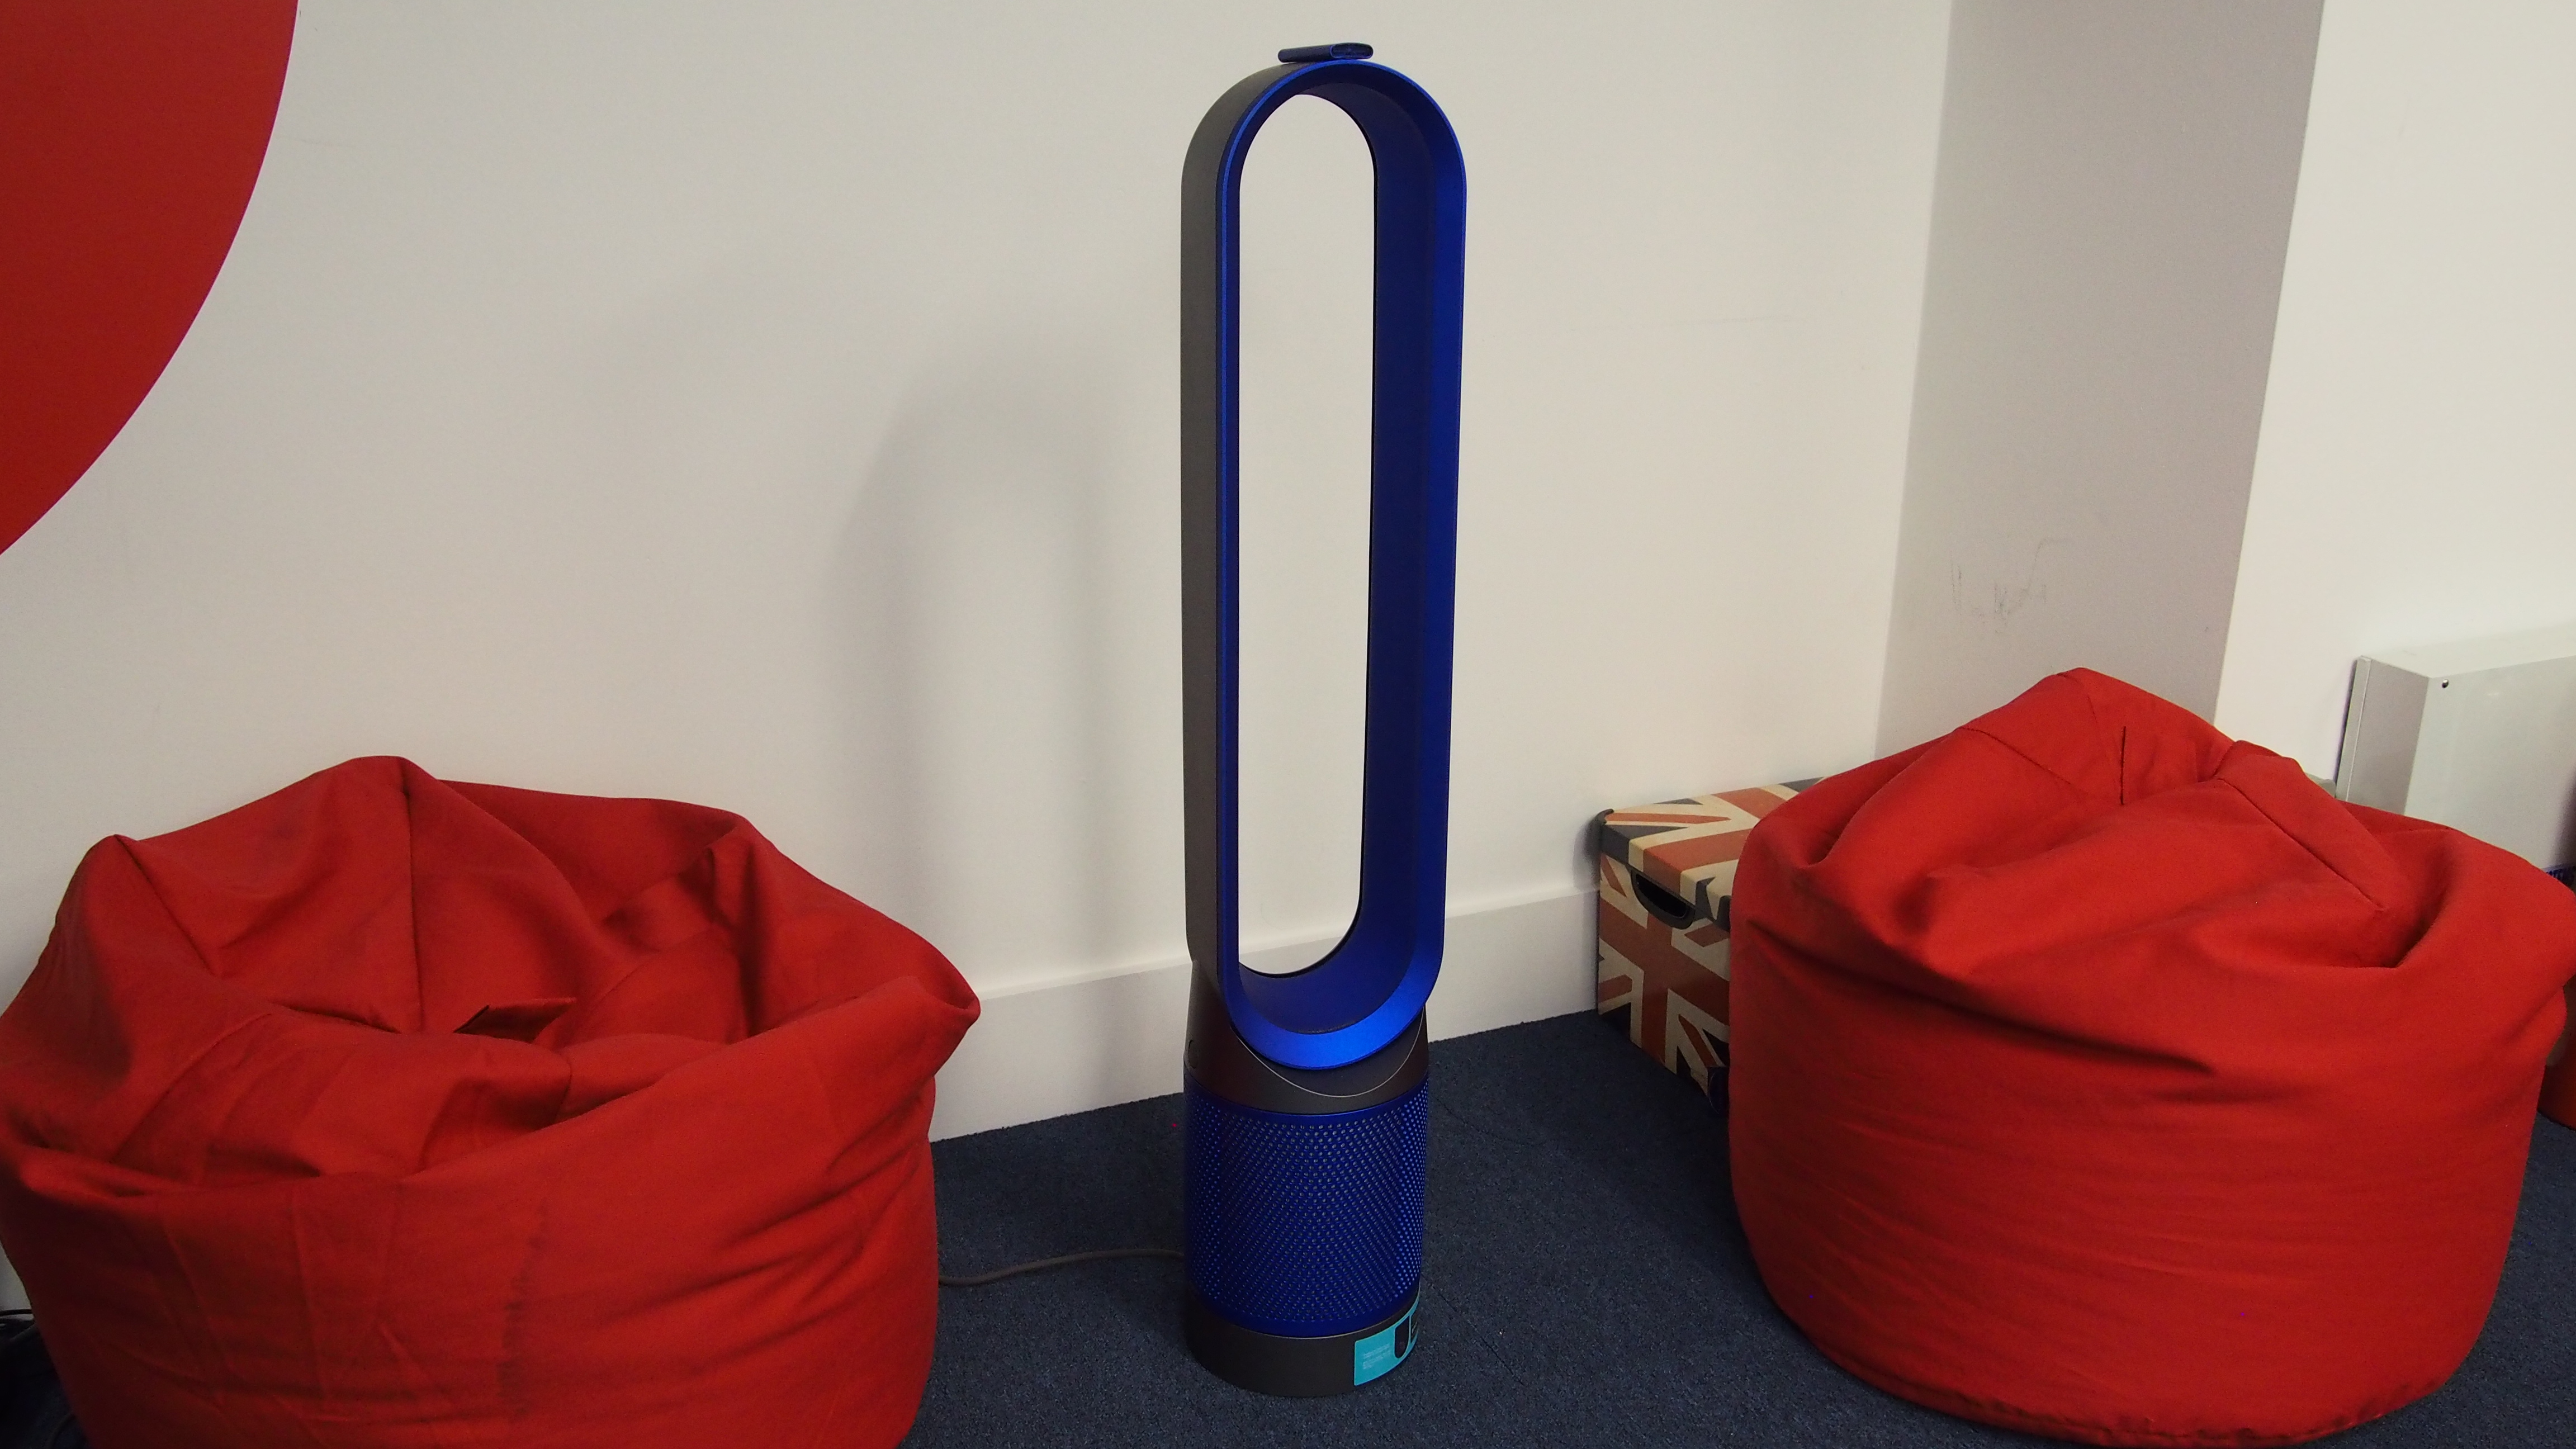 dyson pure cool link tower review the emperor of tower. Black Bedroom Furniture Sets. Home Design Ideas